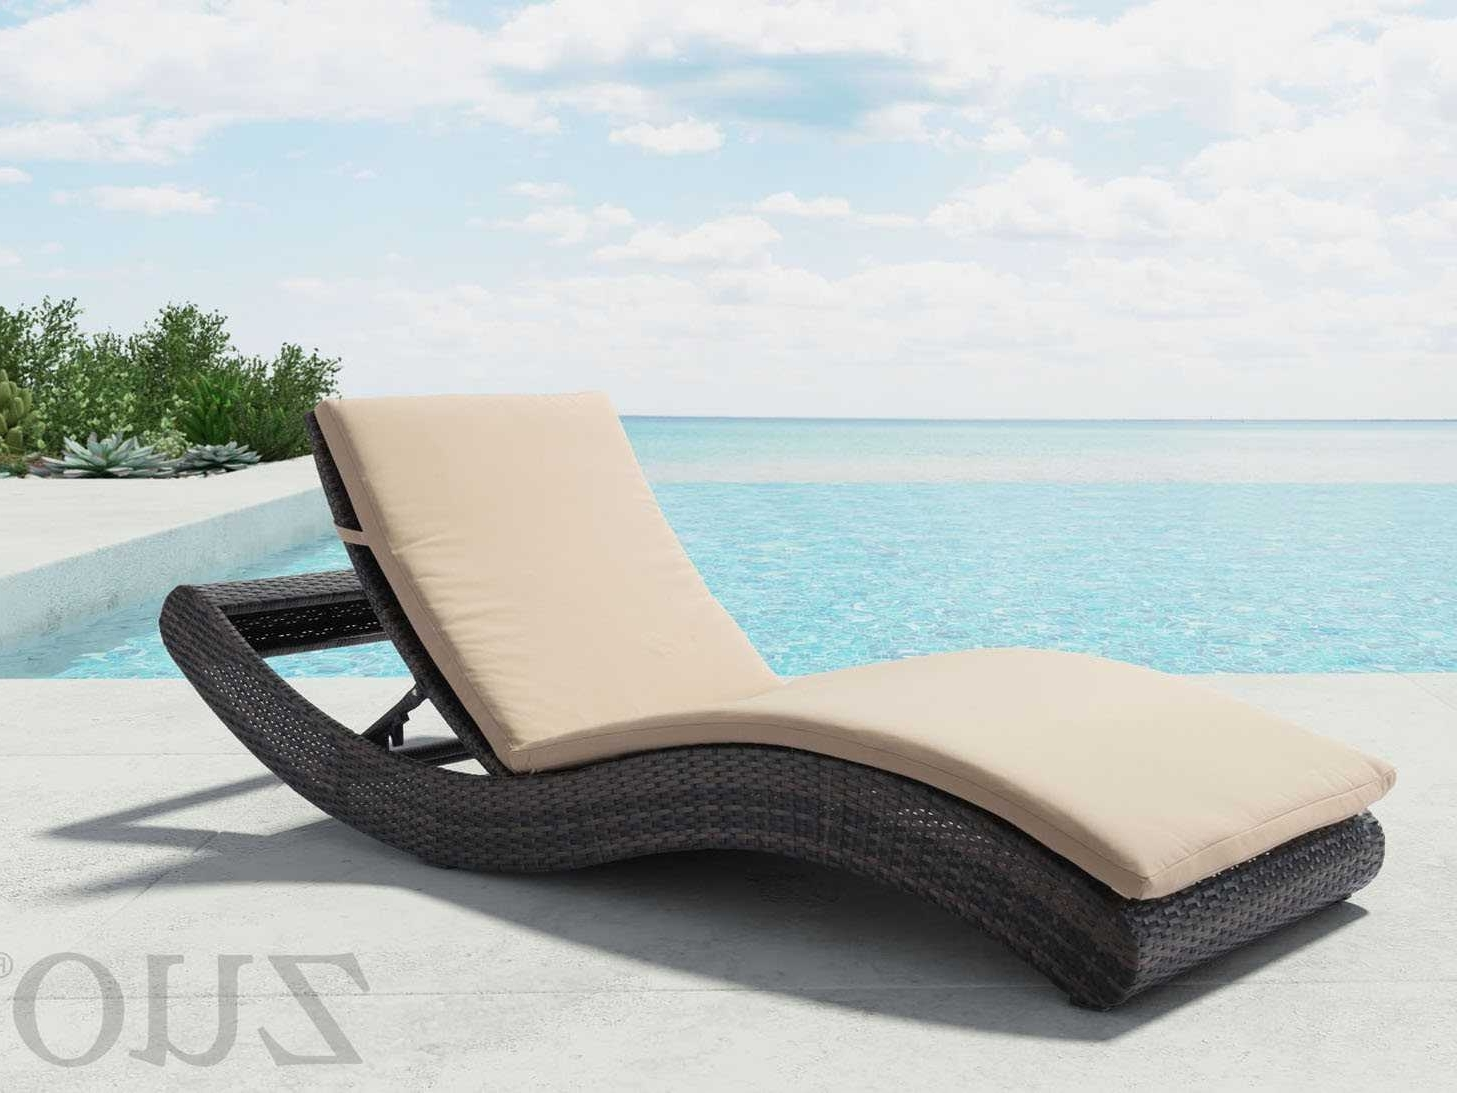 Zuo Outdoor Pamelon Beach Aluminum Wicker Beach Chaise Lounge In Pertaining To Most Current Beach Chaise Lounges (View 15 of 15)